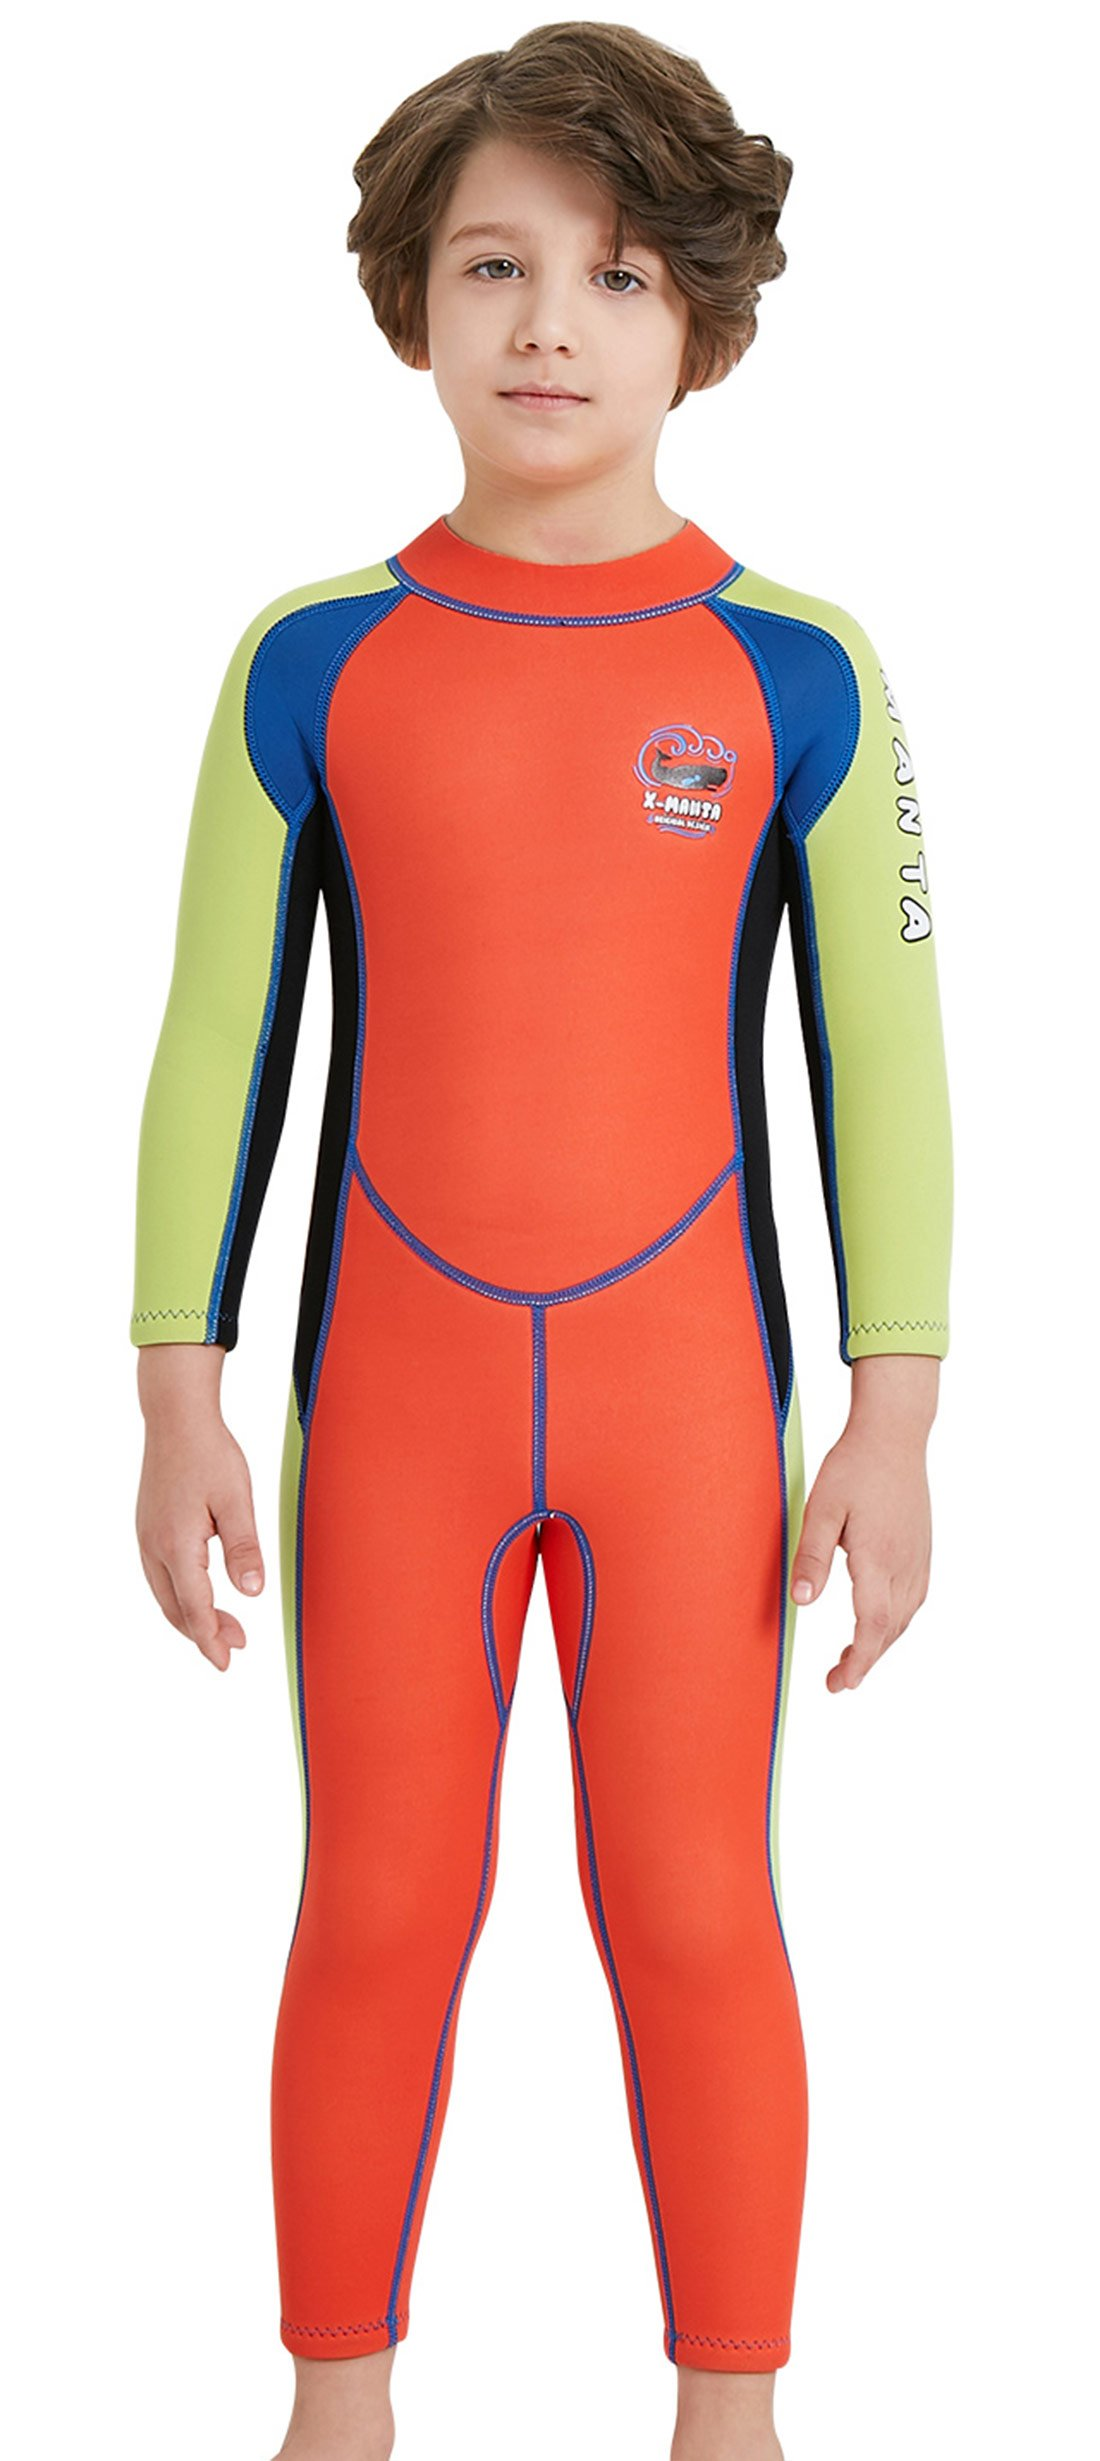 DIVE & SAIL Wetsuits for Kids Boys Girls Rash Guard One Piece Diving Swimsuit UV Protection Coloful Swimwear Orange XL by DIVE & SAIL